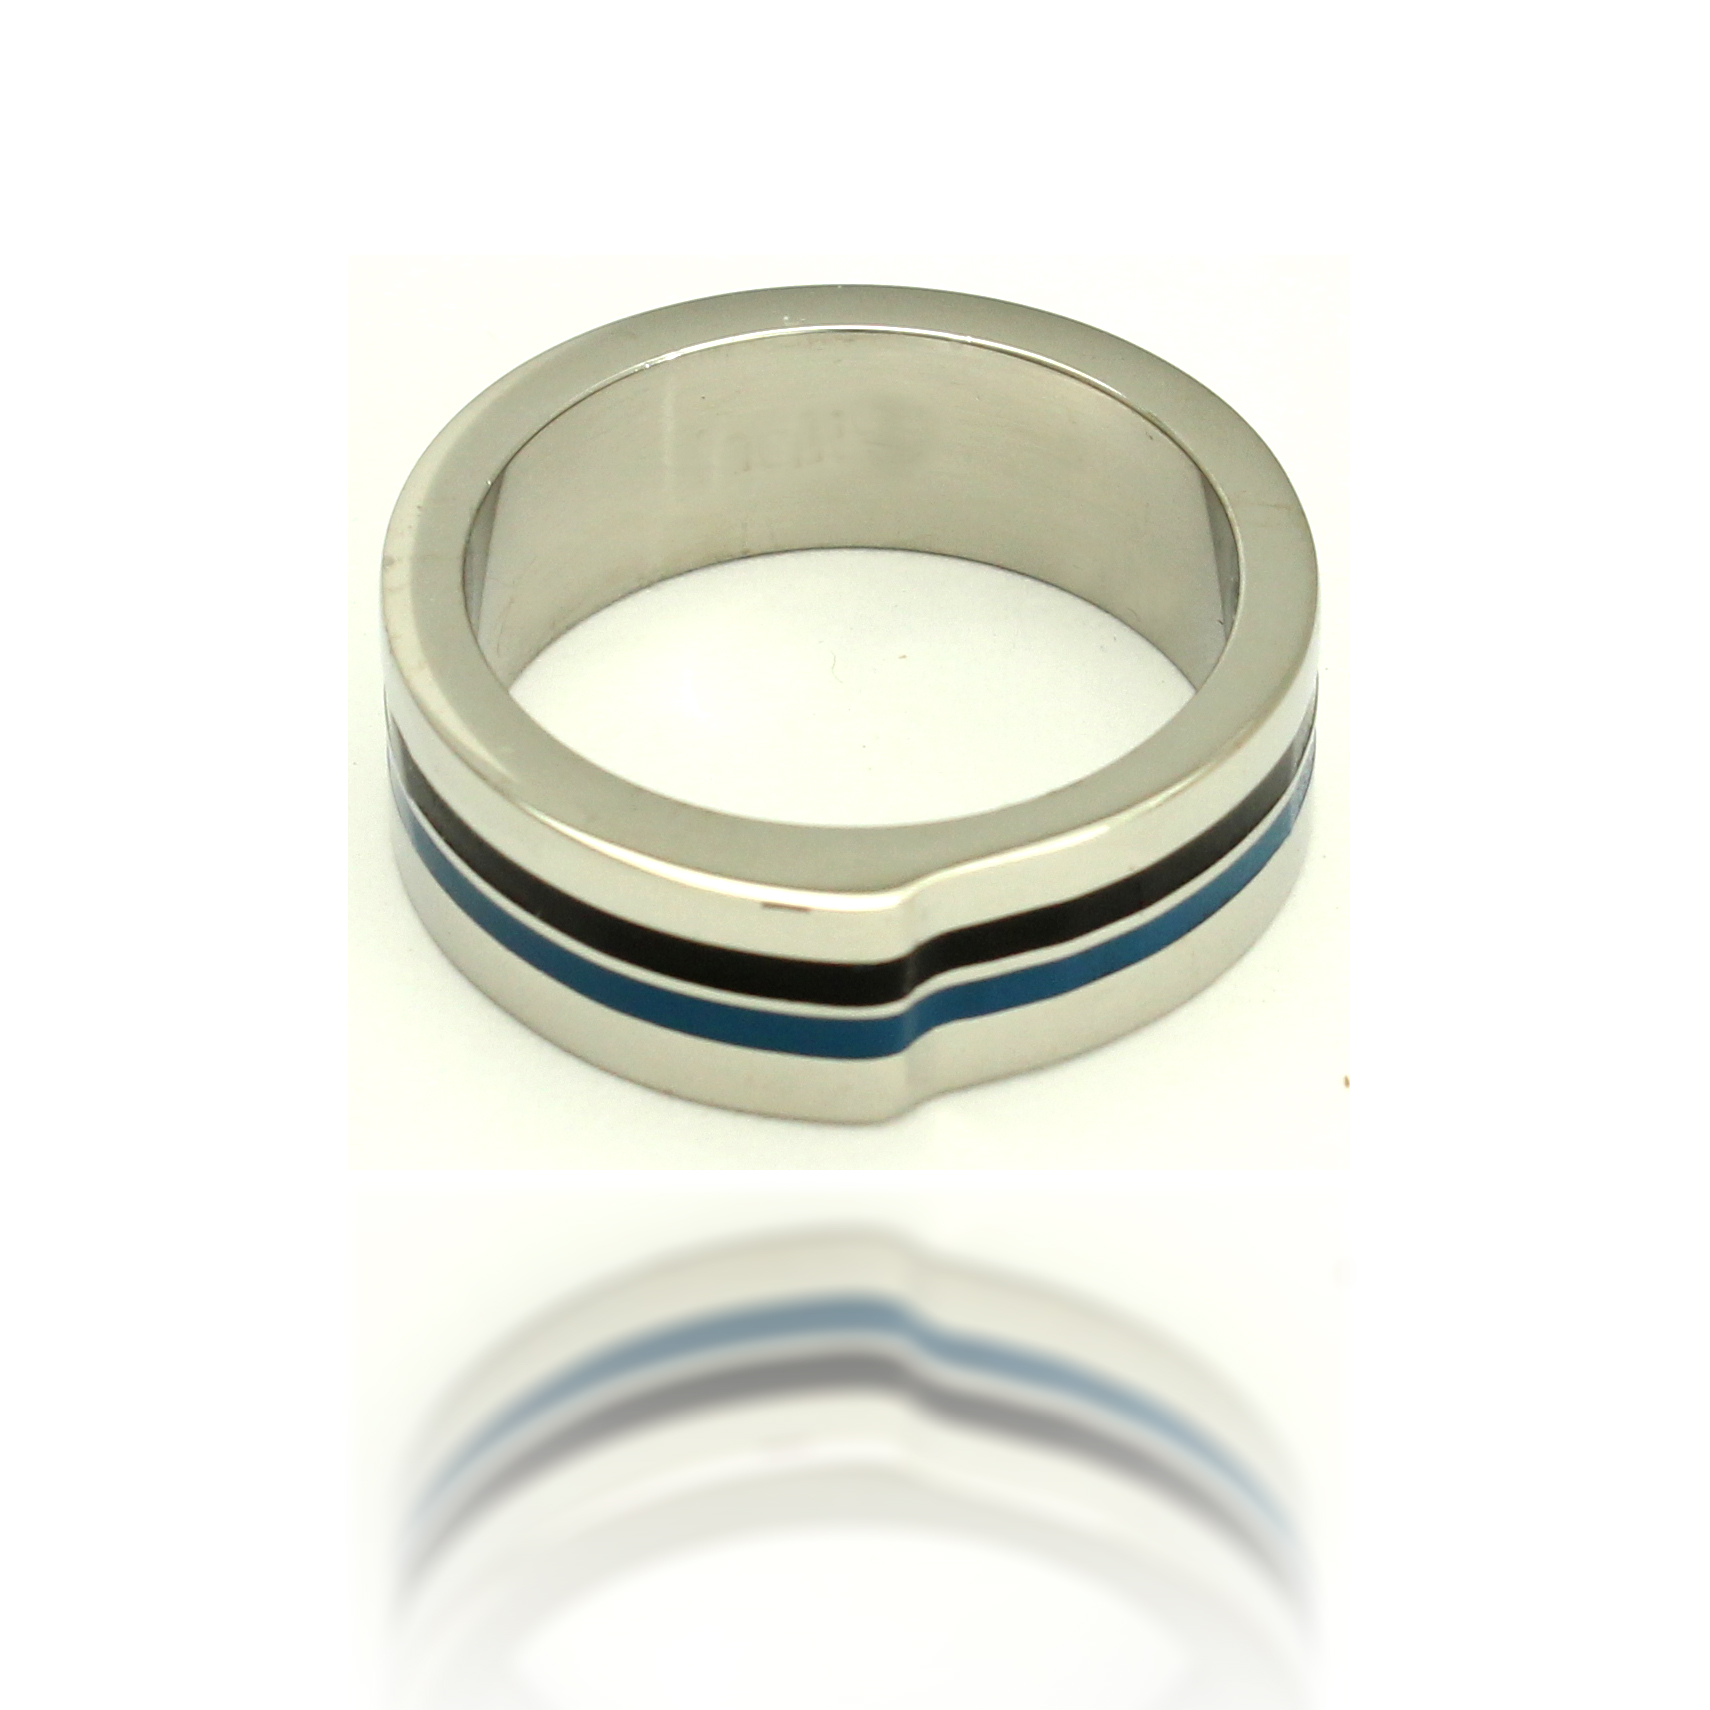 316L Stainless Steel Blue and Black Striped Fashion Ring, Size 10.25